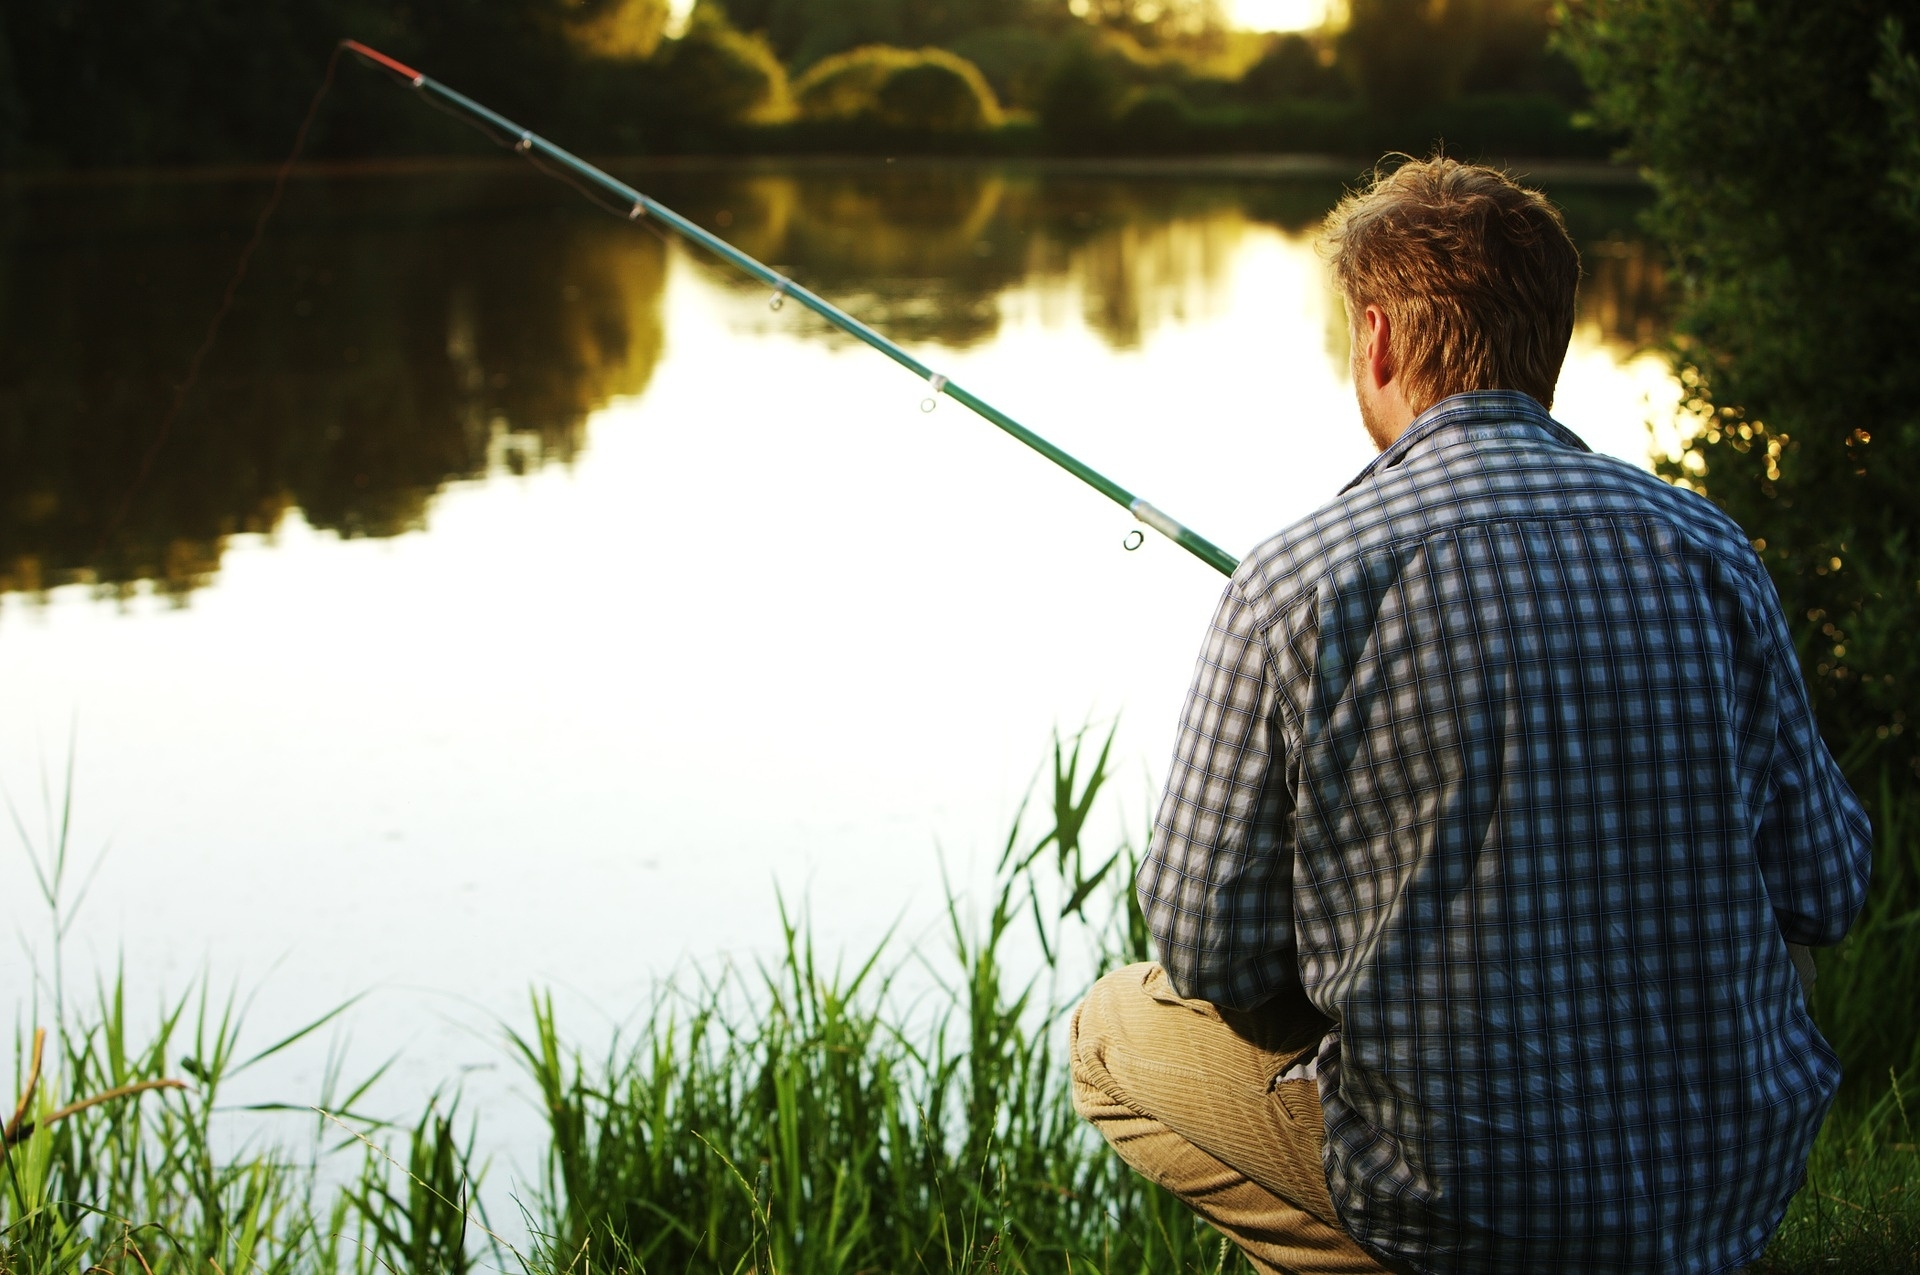 Fishing Calendar For 2020 | Best Fishing Times From The Old